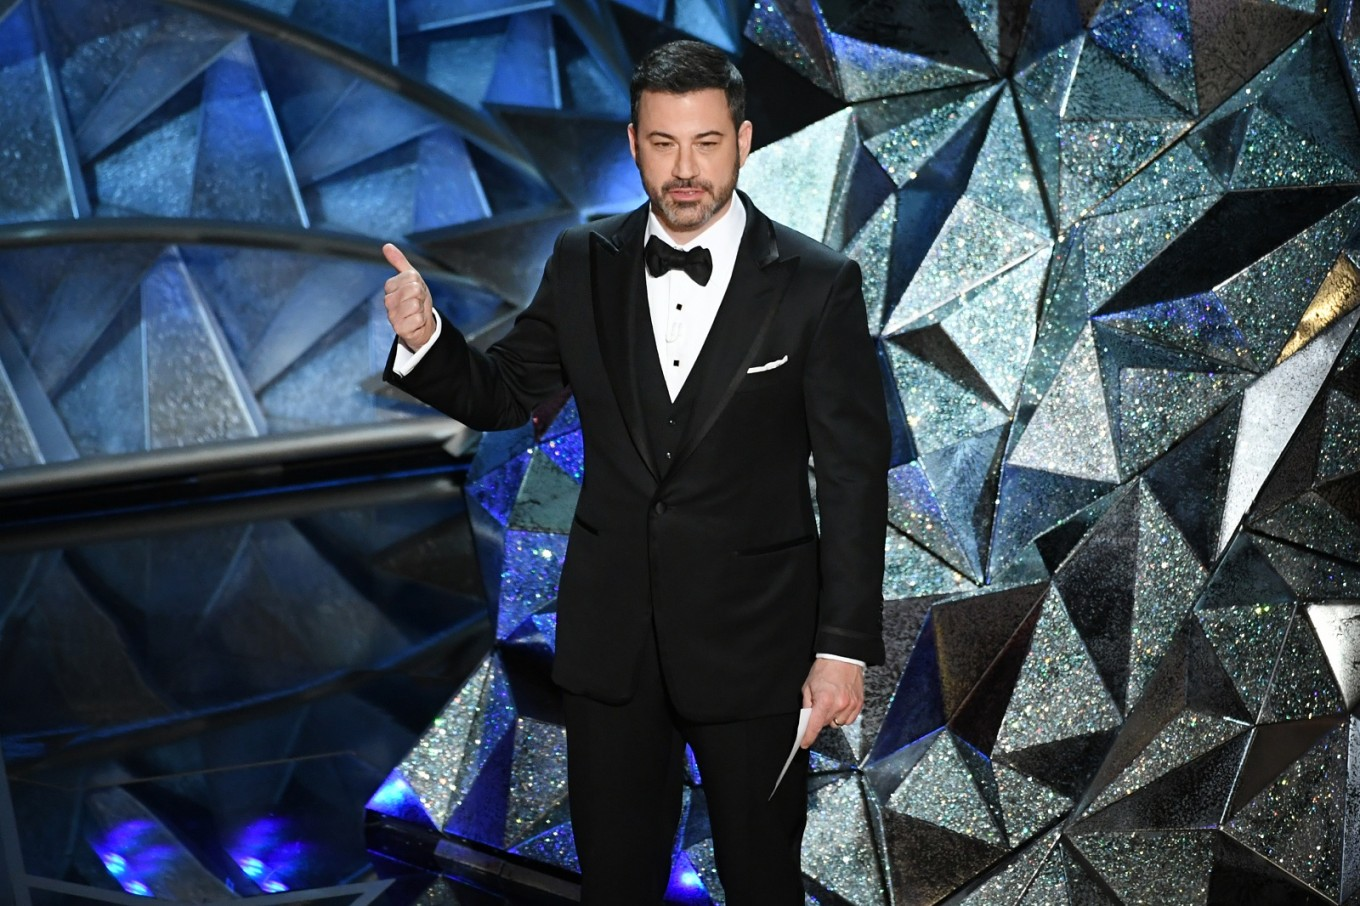 Jimmy Kimmel gets his third shot at hosting the Emmy Awards